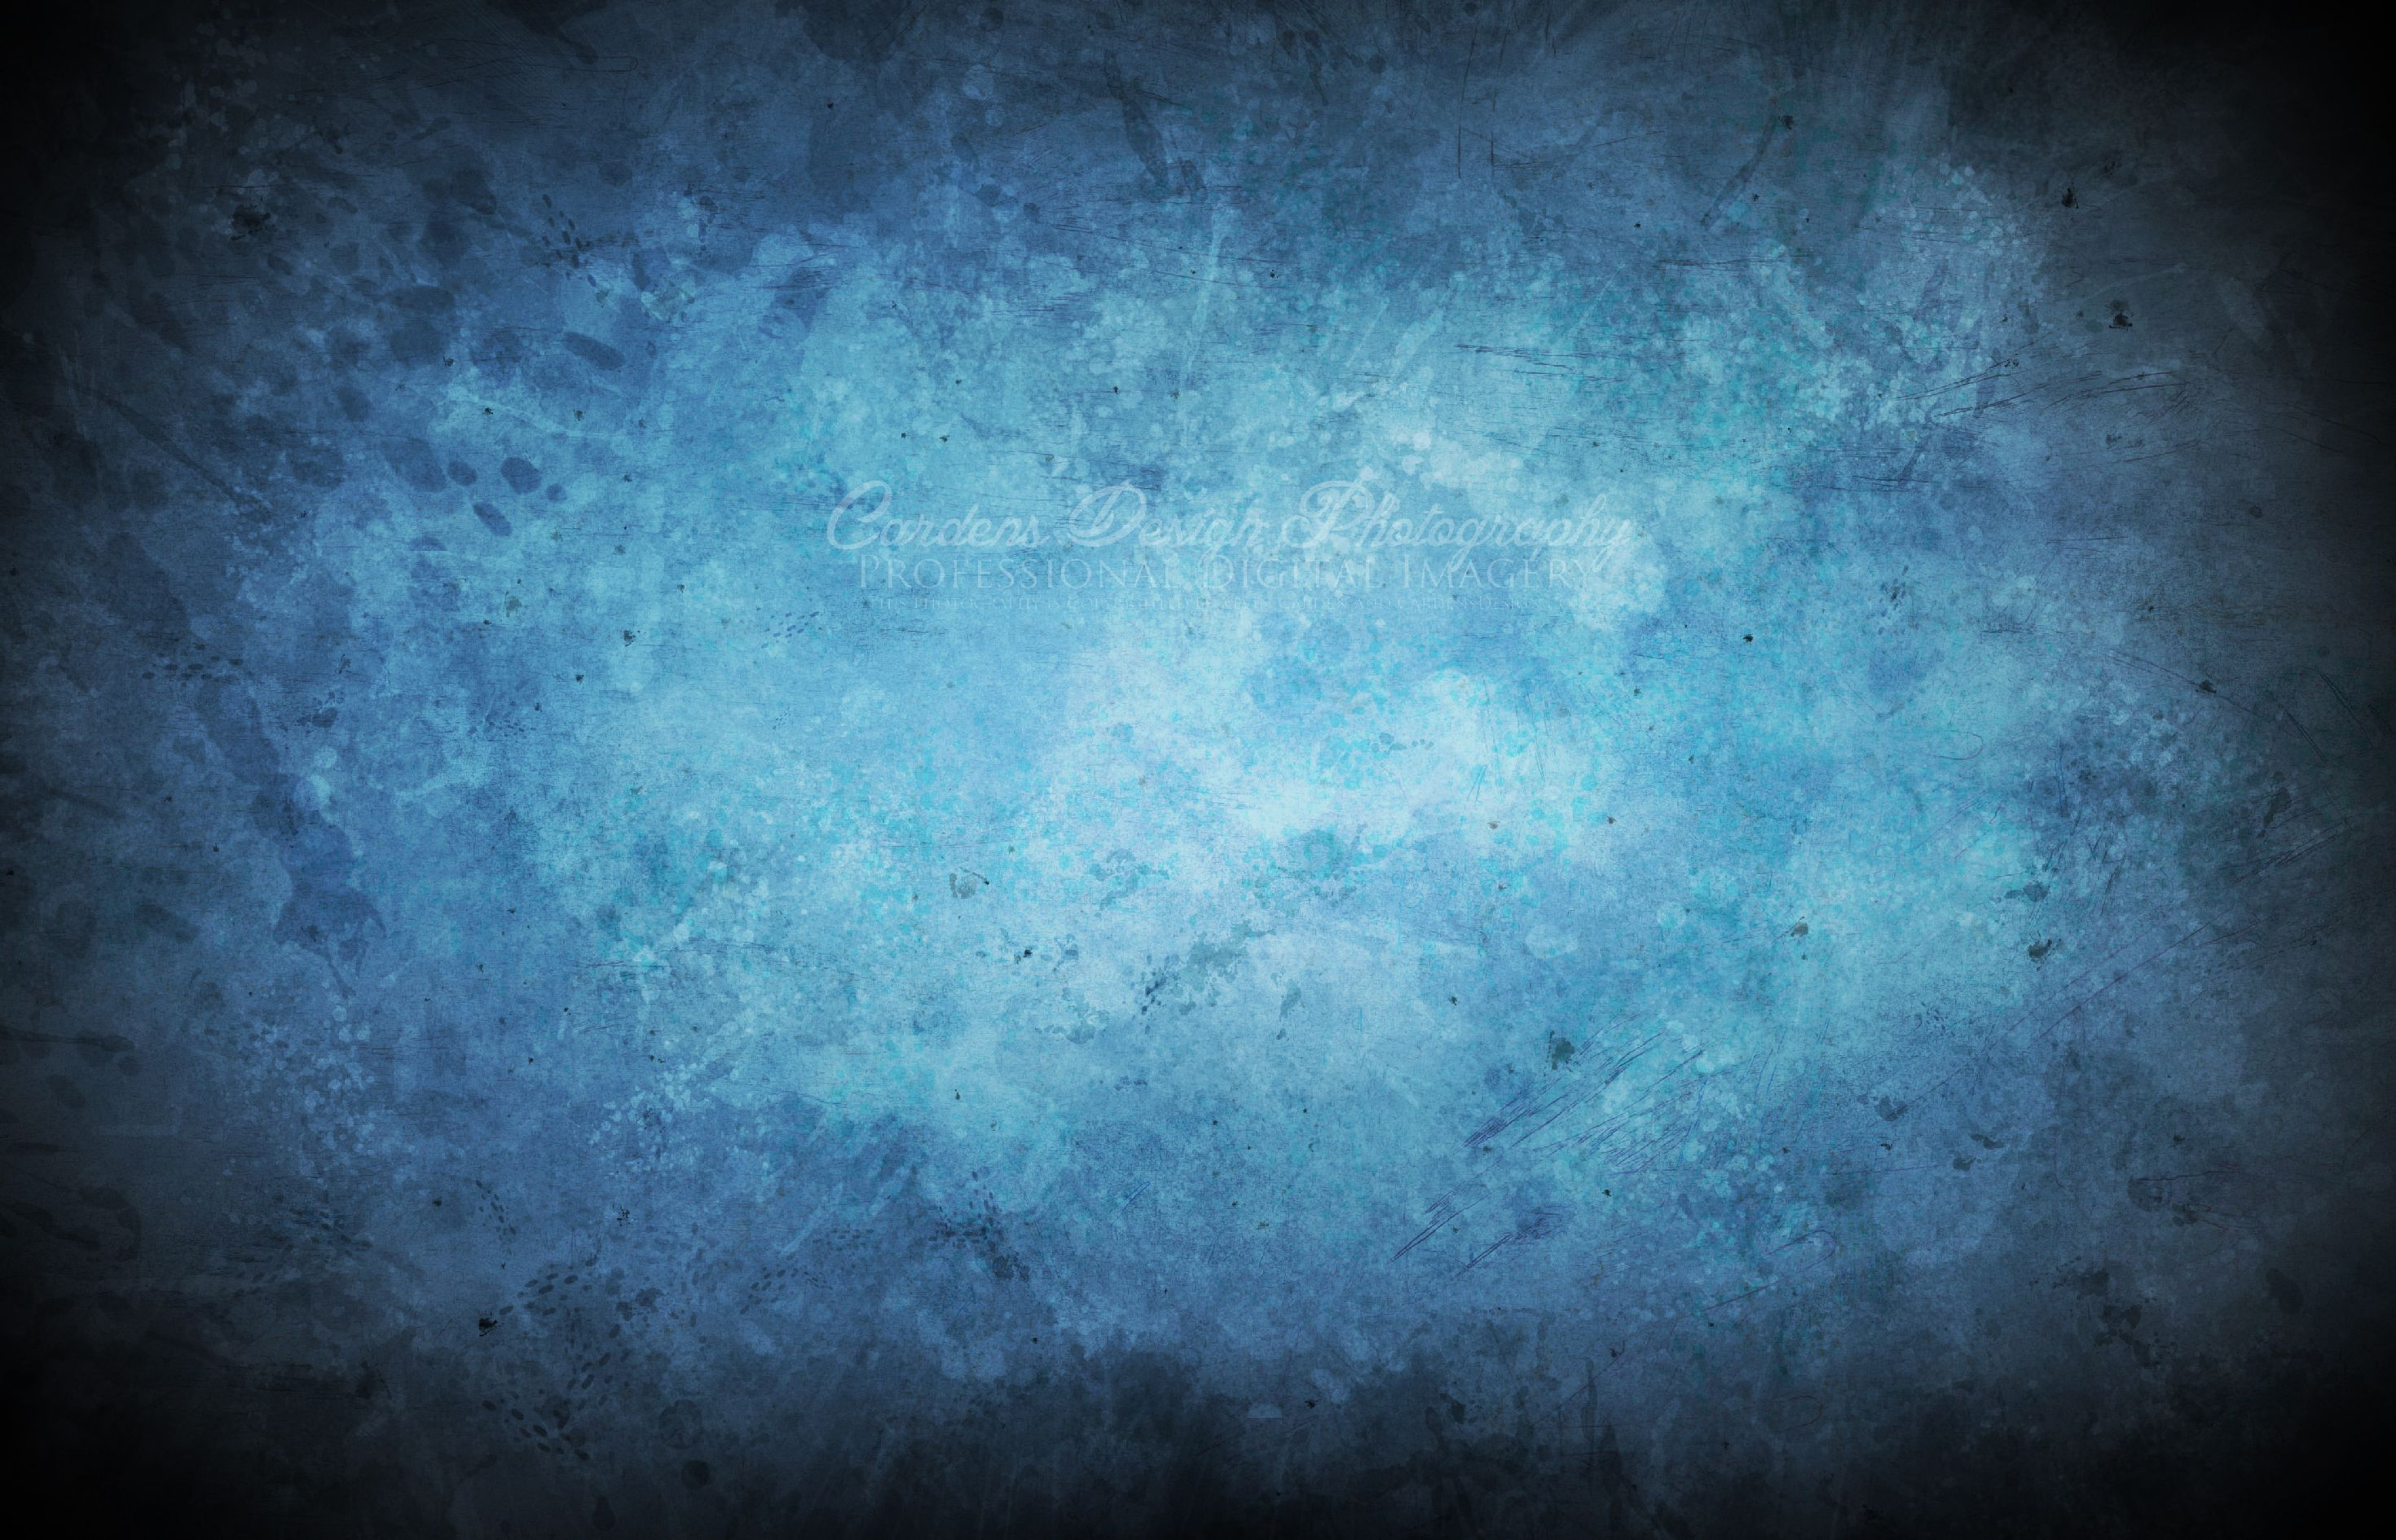 Blue Grunge Background: 20 Blue Grunge Background Photoshop PSD Images